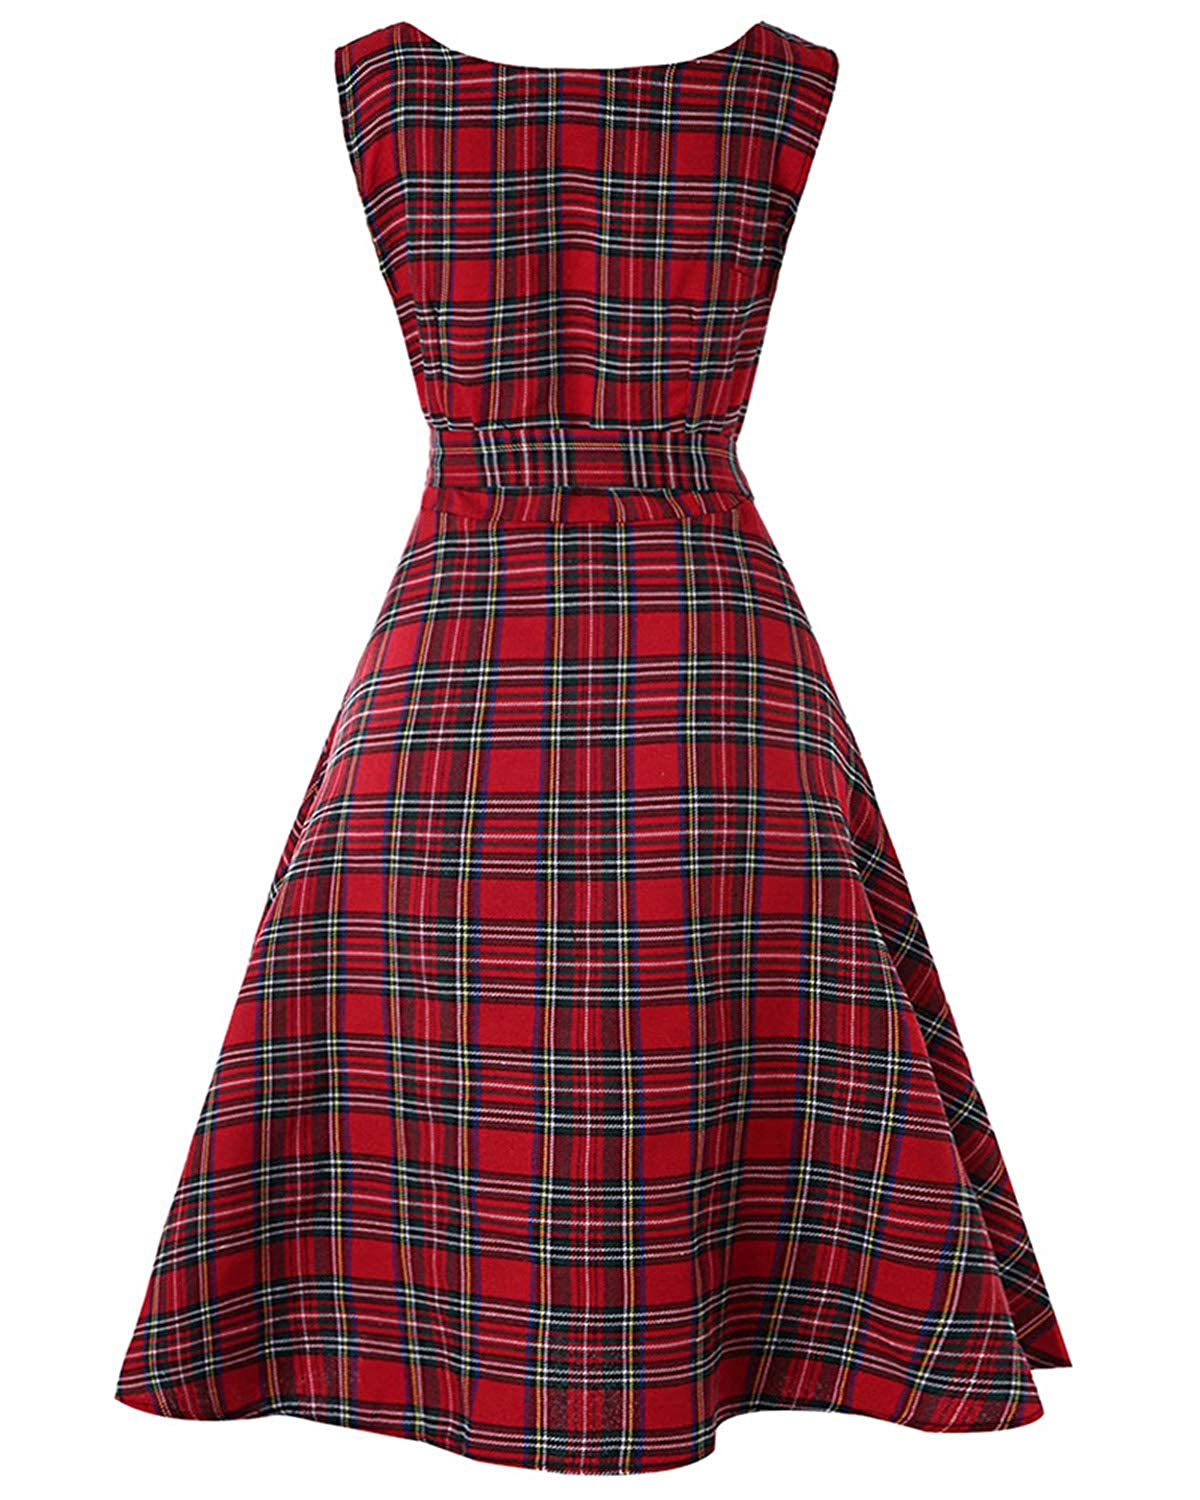 b531274c73796c ZAFUL Women's 50s Vintage Floral Sleeveless Dress Spring Garden Swing Party  Picnic A Line Cocktail Dress(Red Plaid with Belt,L): Amazon.ca: Clothing &  ...